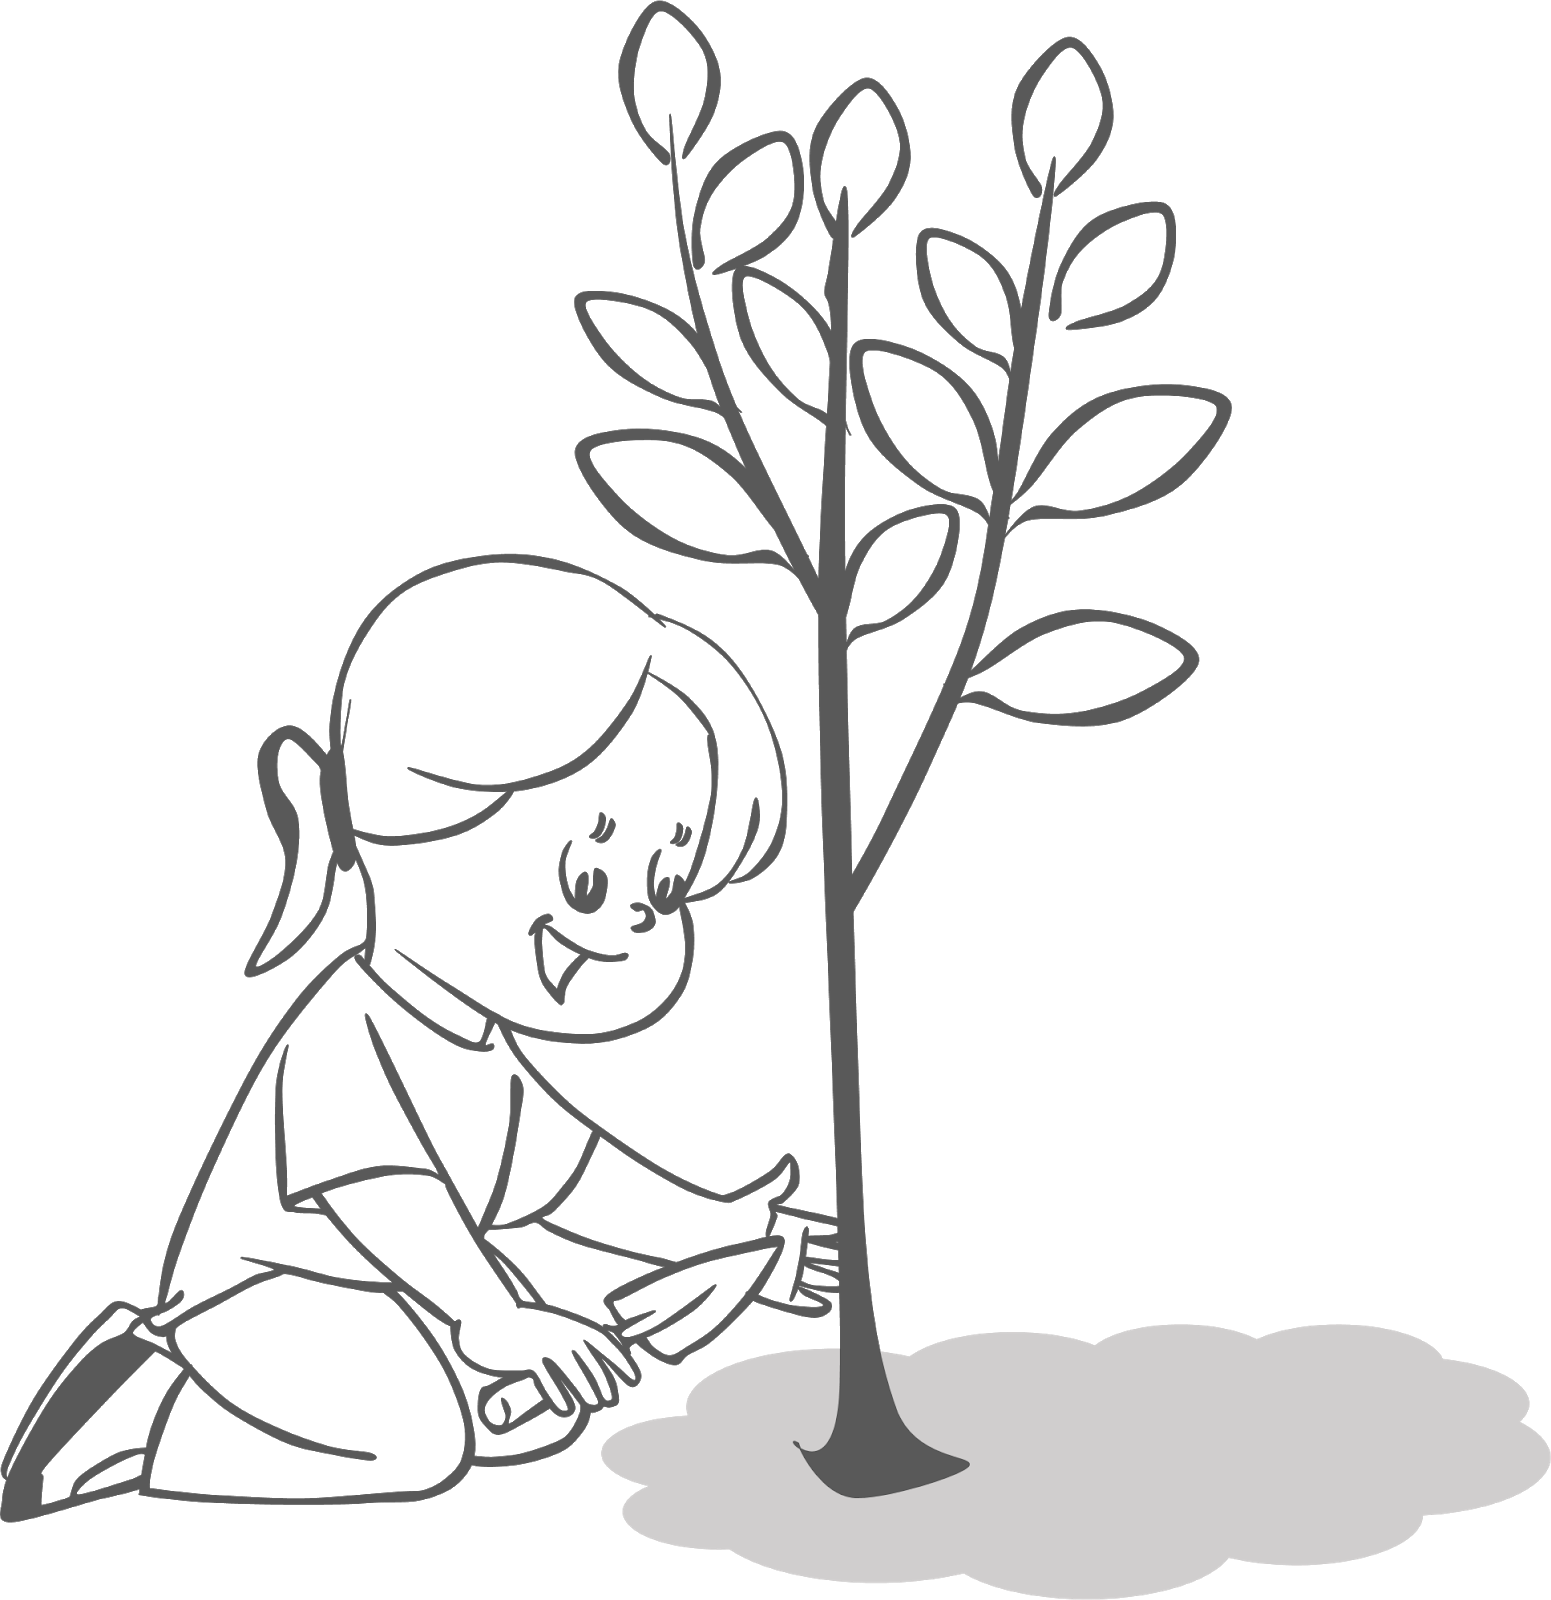 Planting Trees Clipart